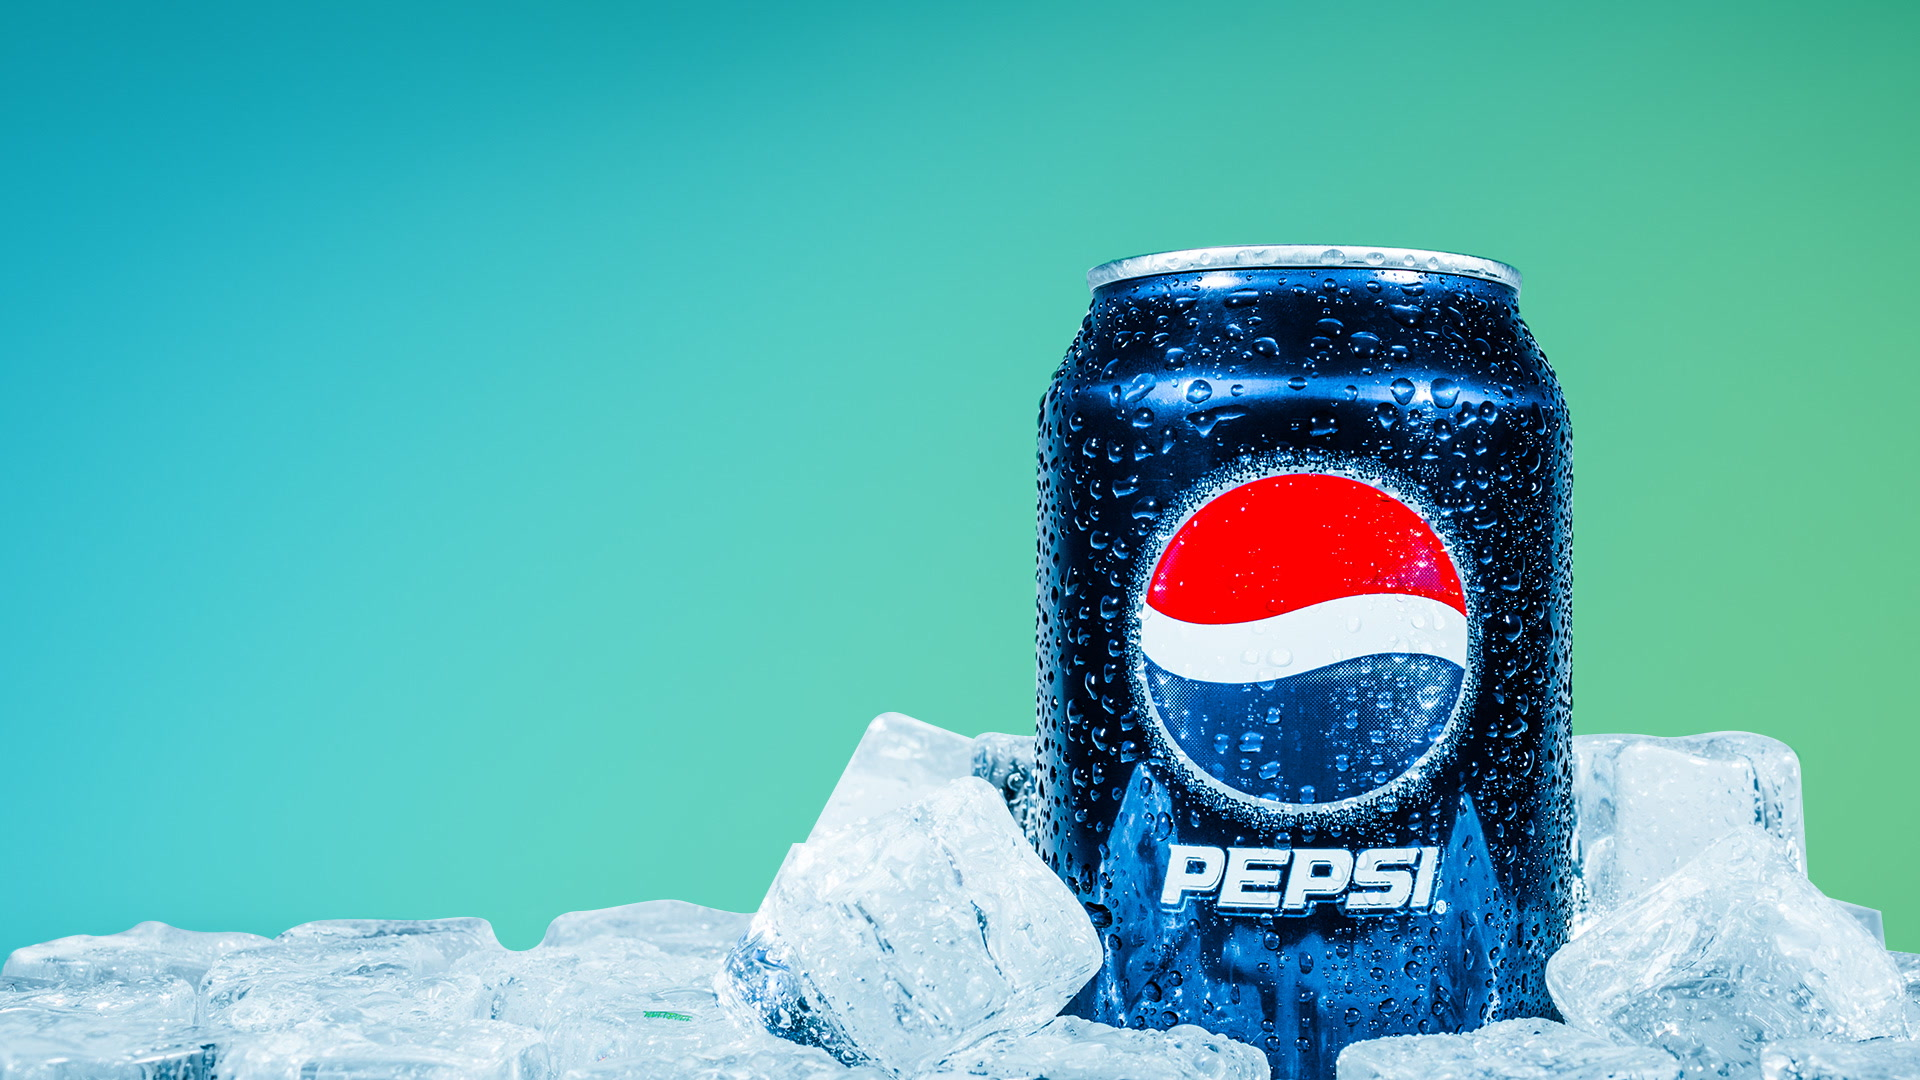 pepsi weakness This coca cola swot analysis reveals how the company controlling one of the most iconic brands of all time used its competitive advantages to become the world's second largest beverage manufacturer.